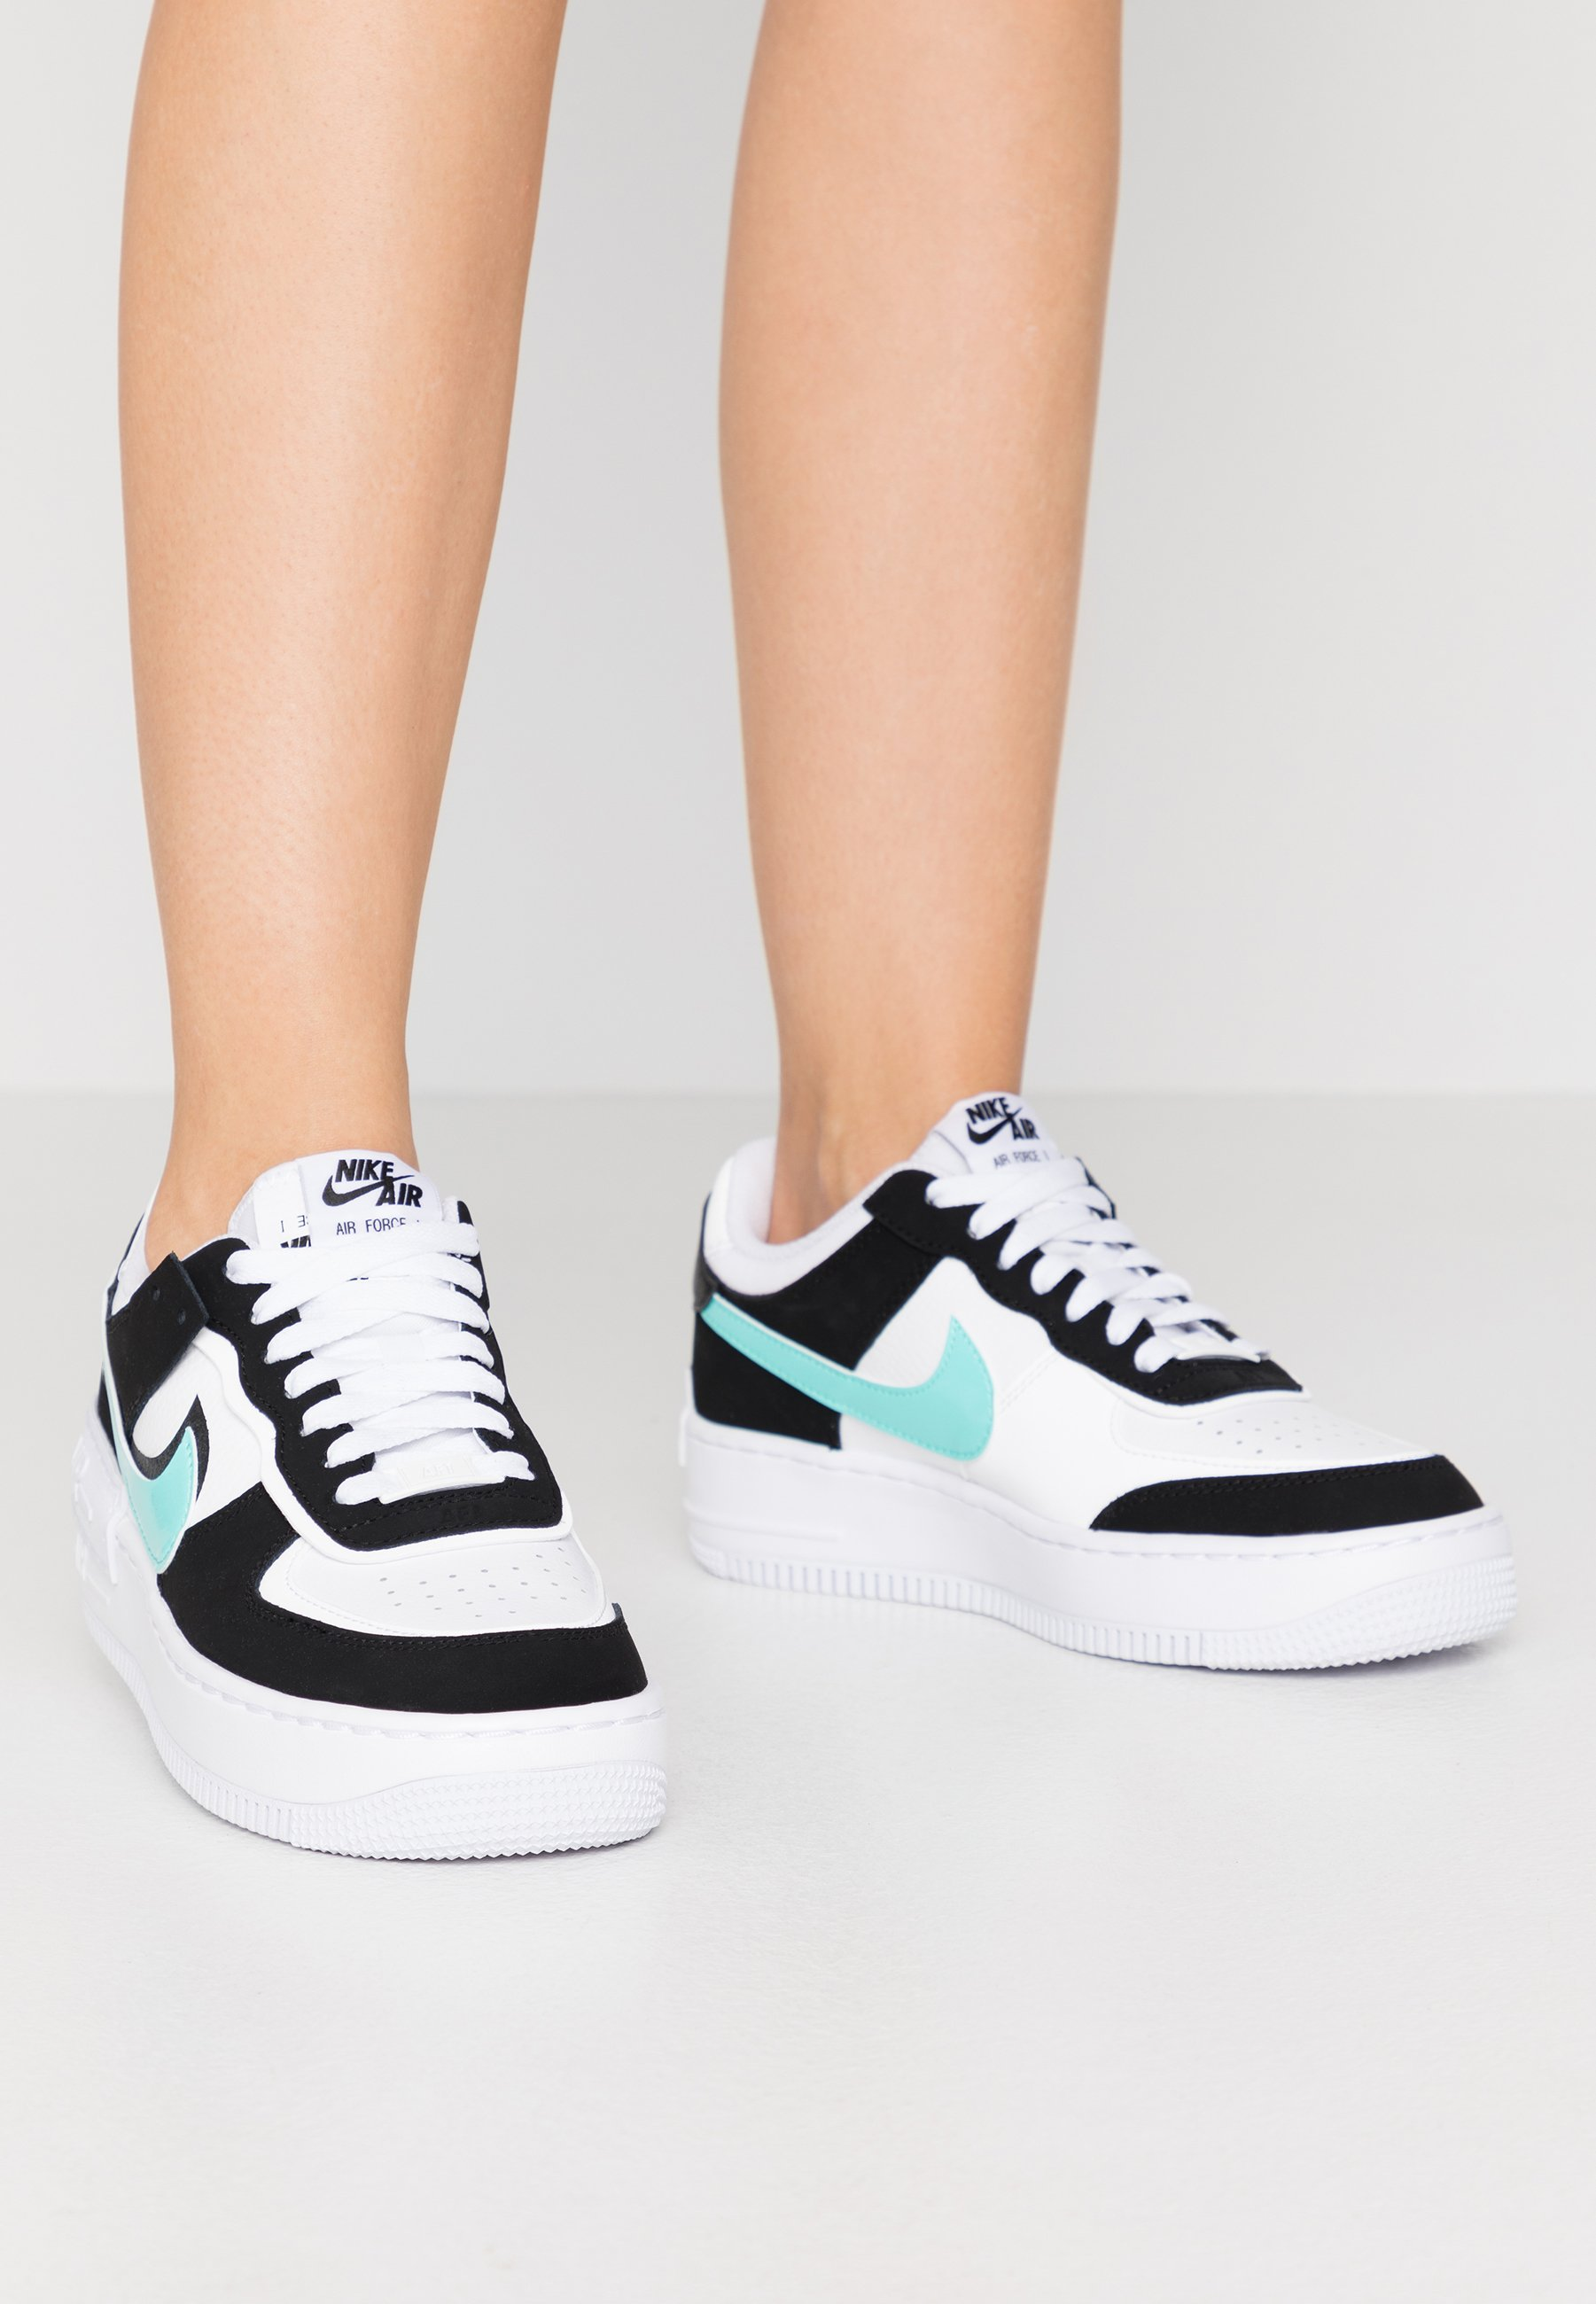 Nike Sportswear Air Force 1 Shadow Trainers White Aurora Green Black White Zalando Co Uk Check the transparent swoosh on this baby. air force 1 shadow trainers white aurora green black